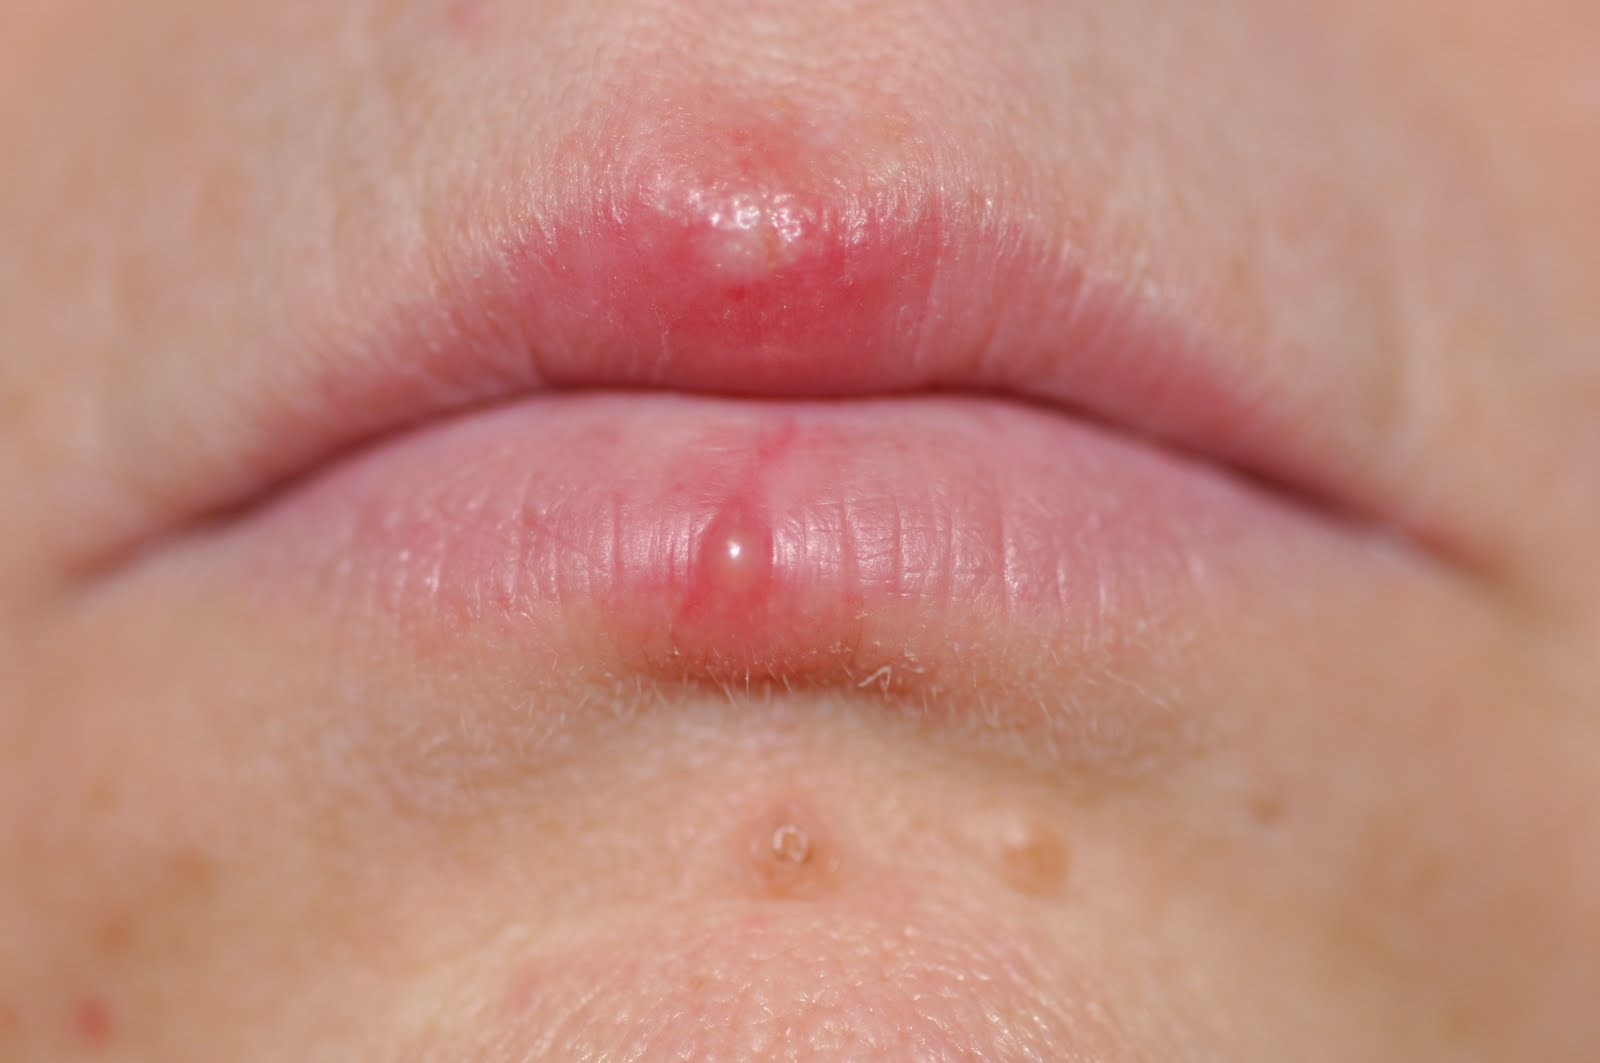 Herpes in the mouth symptoms